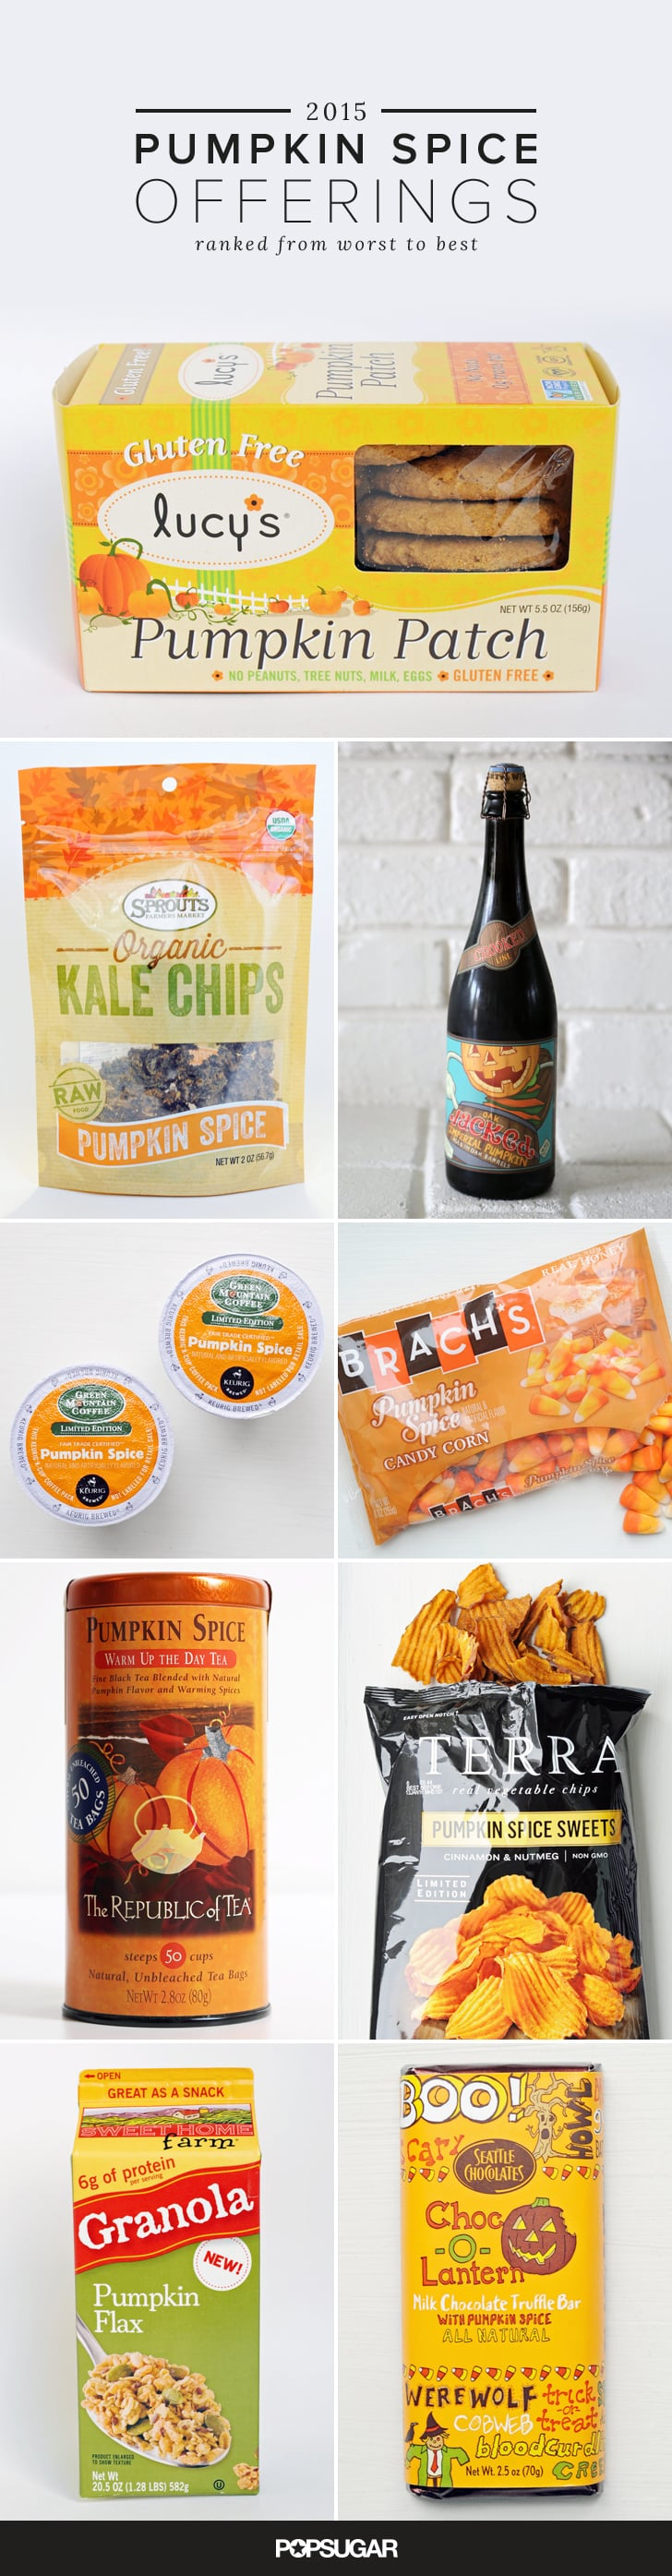 Pumpkin Spice Flavored Products   2015